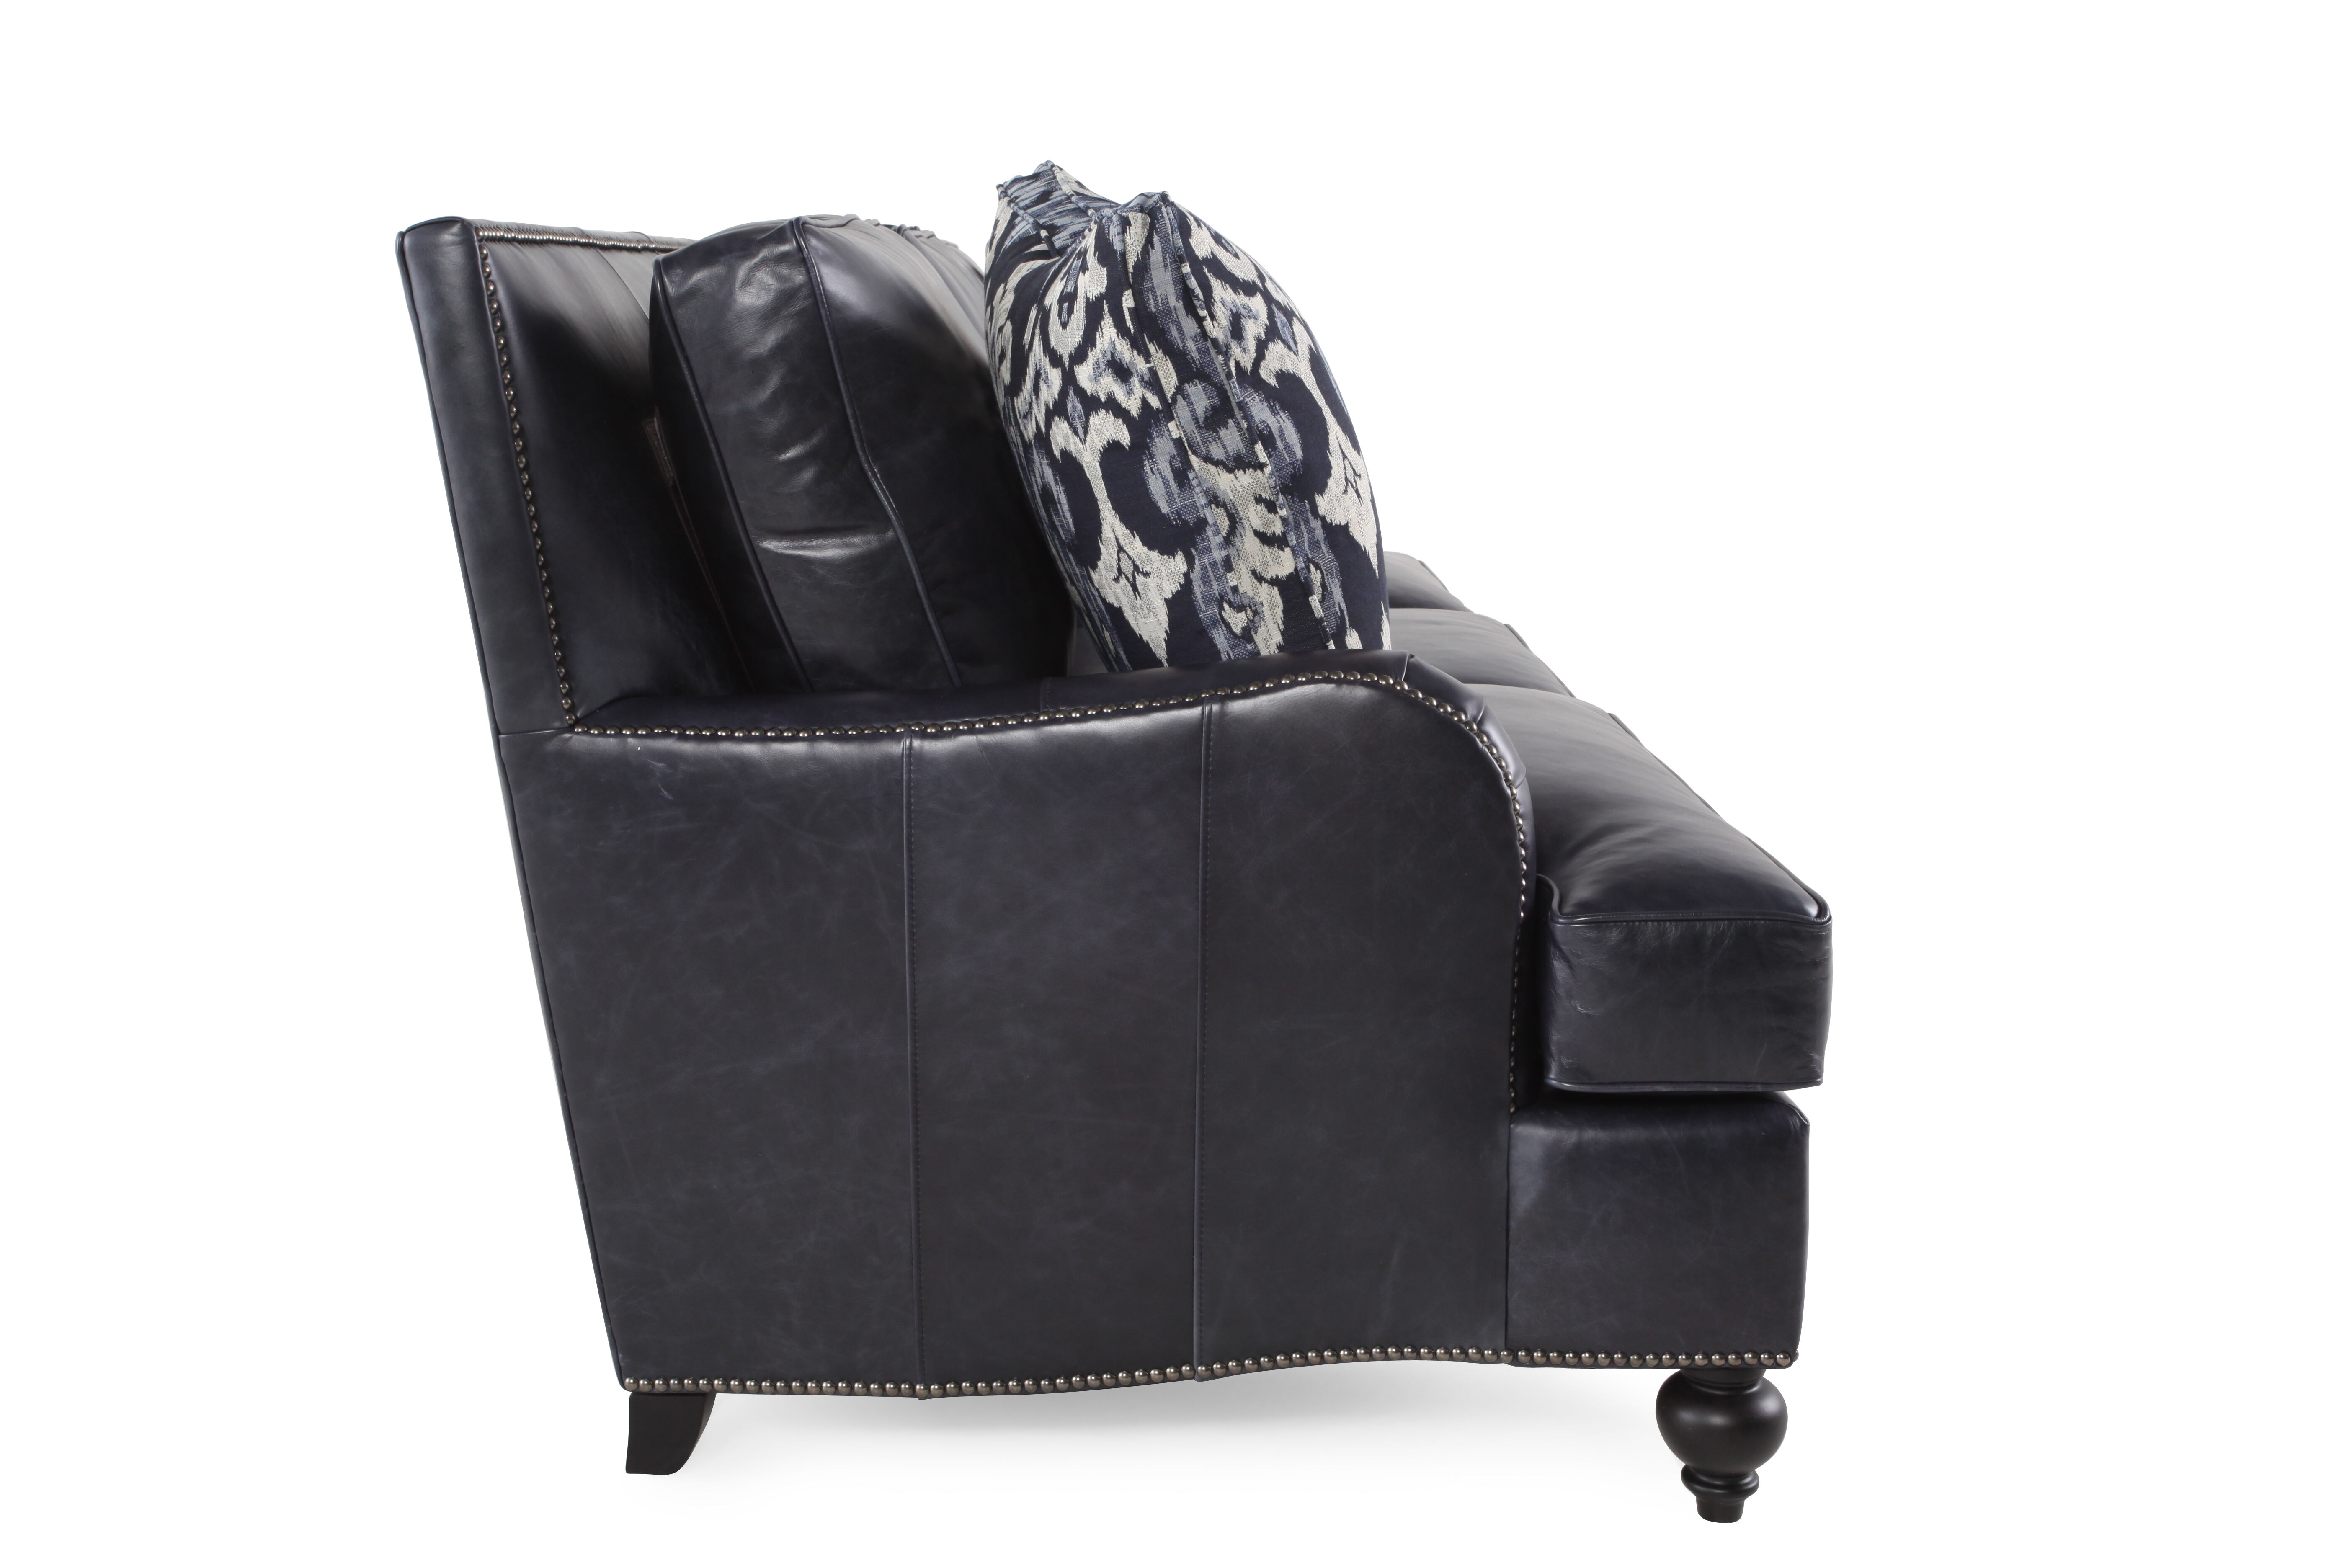 black leather sofa with nailheads latest l shape design 2018 nailhead accented 86 quot in mathis